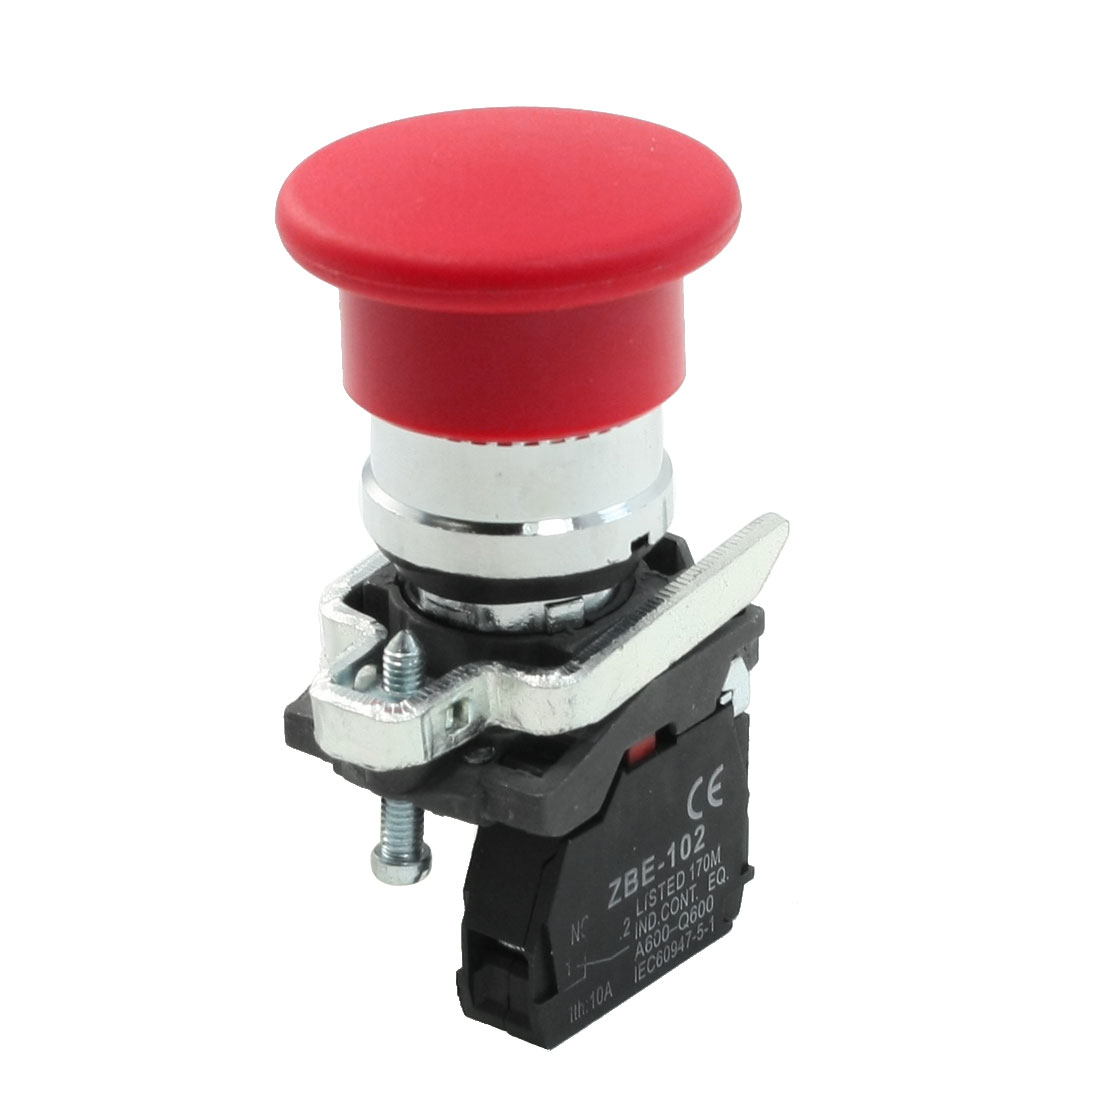 AC 250V 6A Panel Mounted Non Lock Red Mushroom Head Reset Rotary Switch